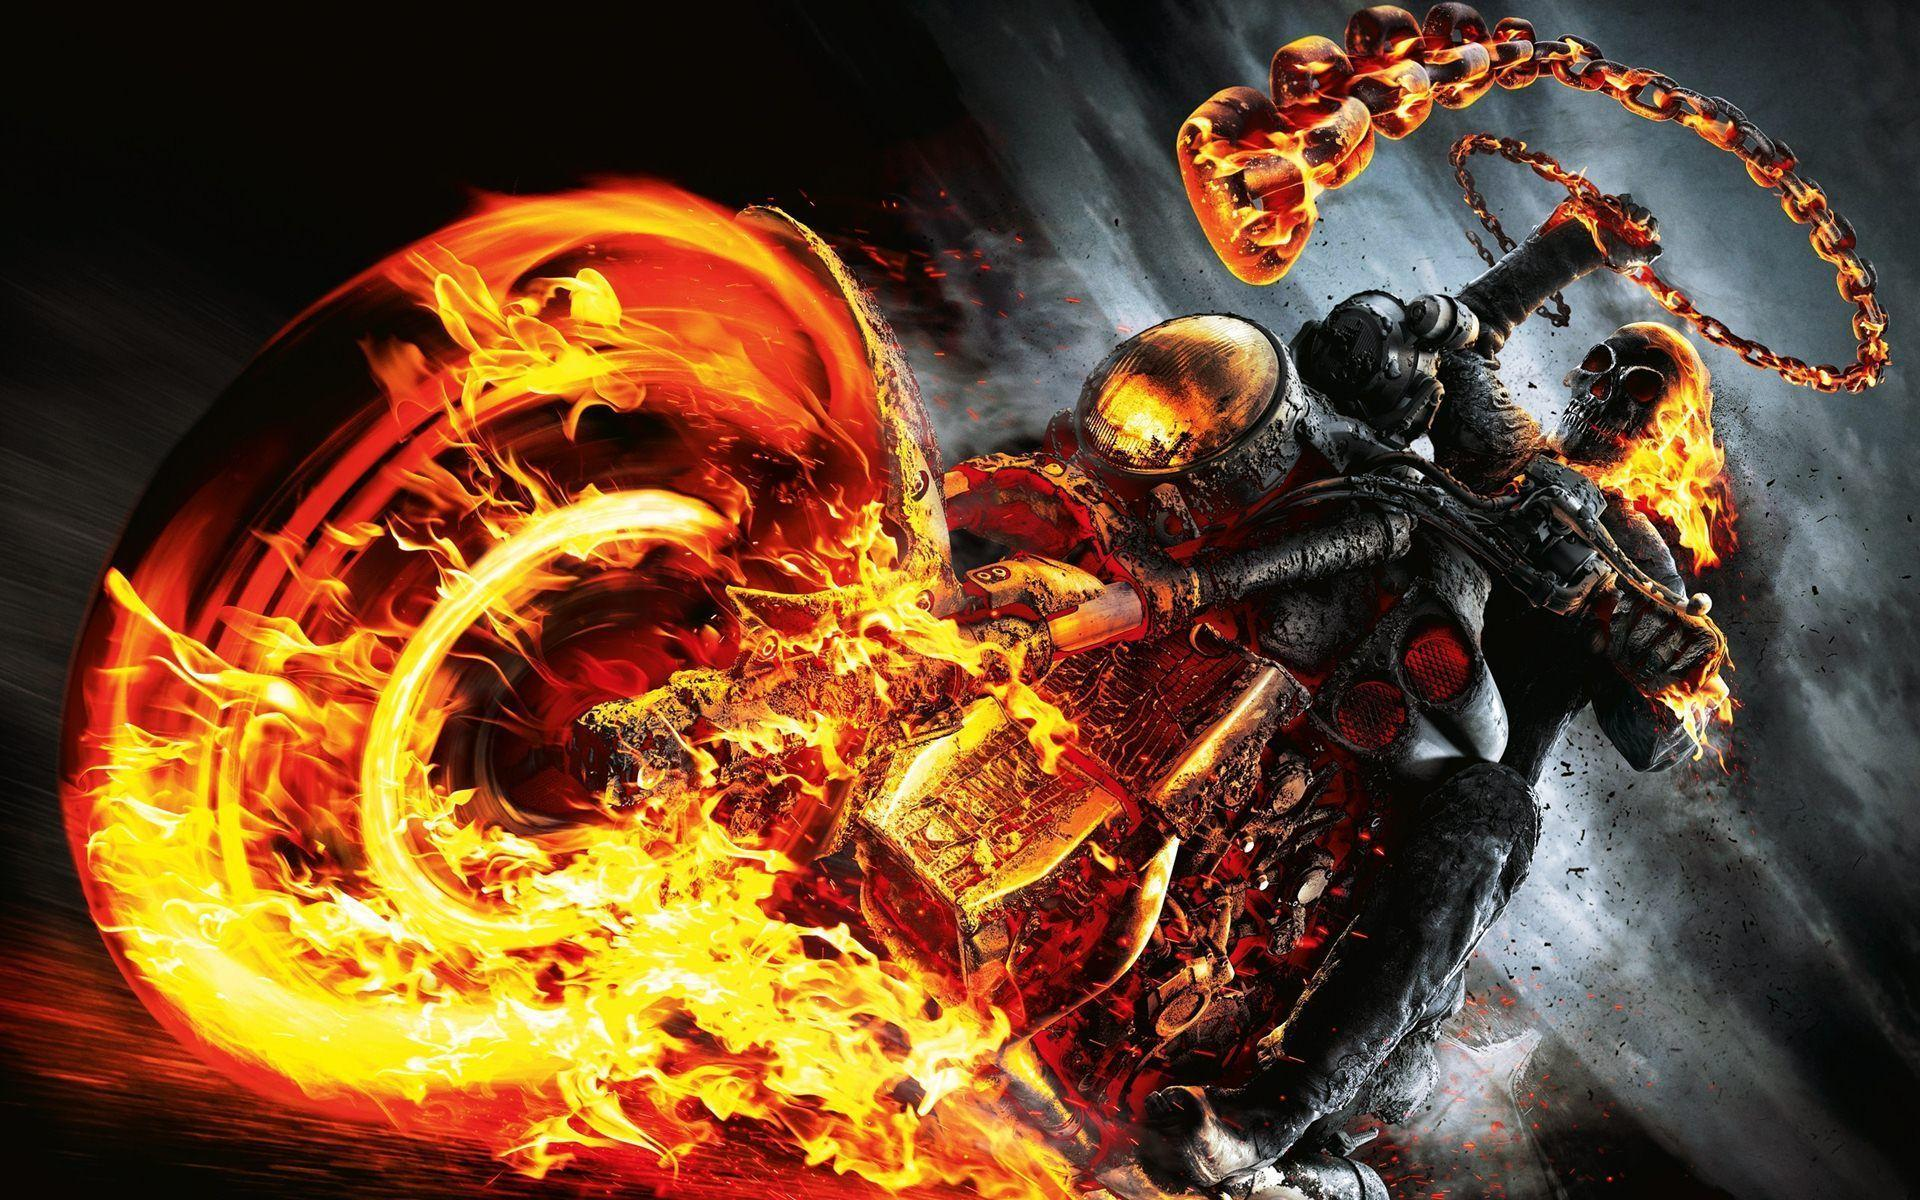 Wallpaper: Free Download Ghost Rider Wallpaper. Ghost Rider Wallpapers